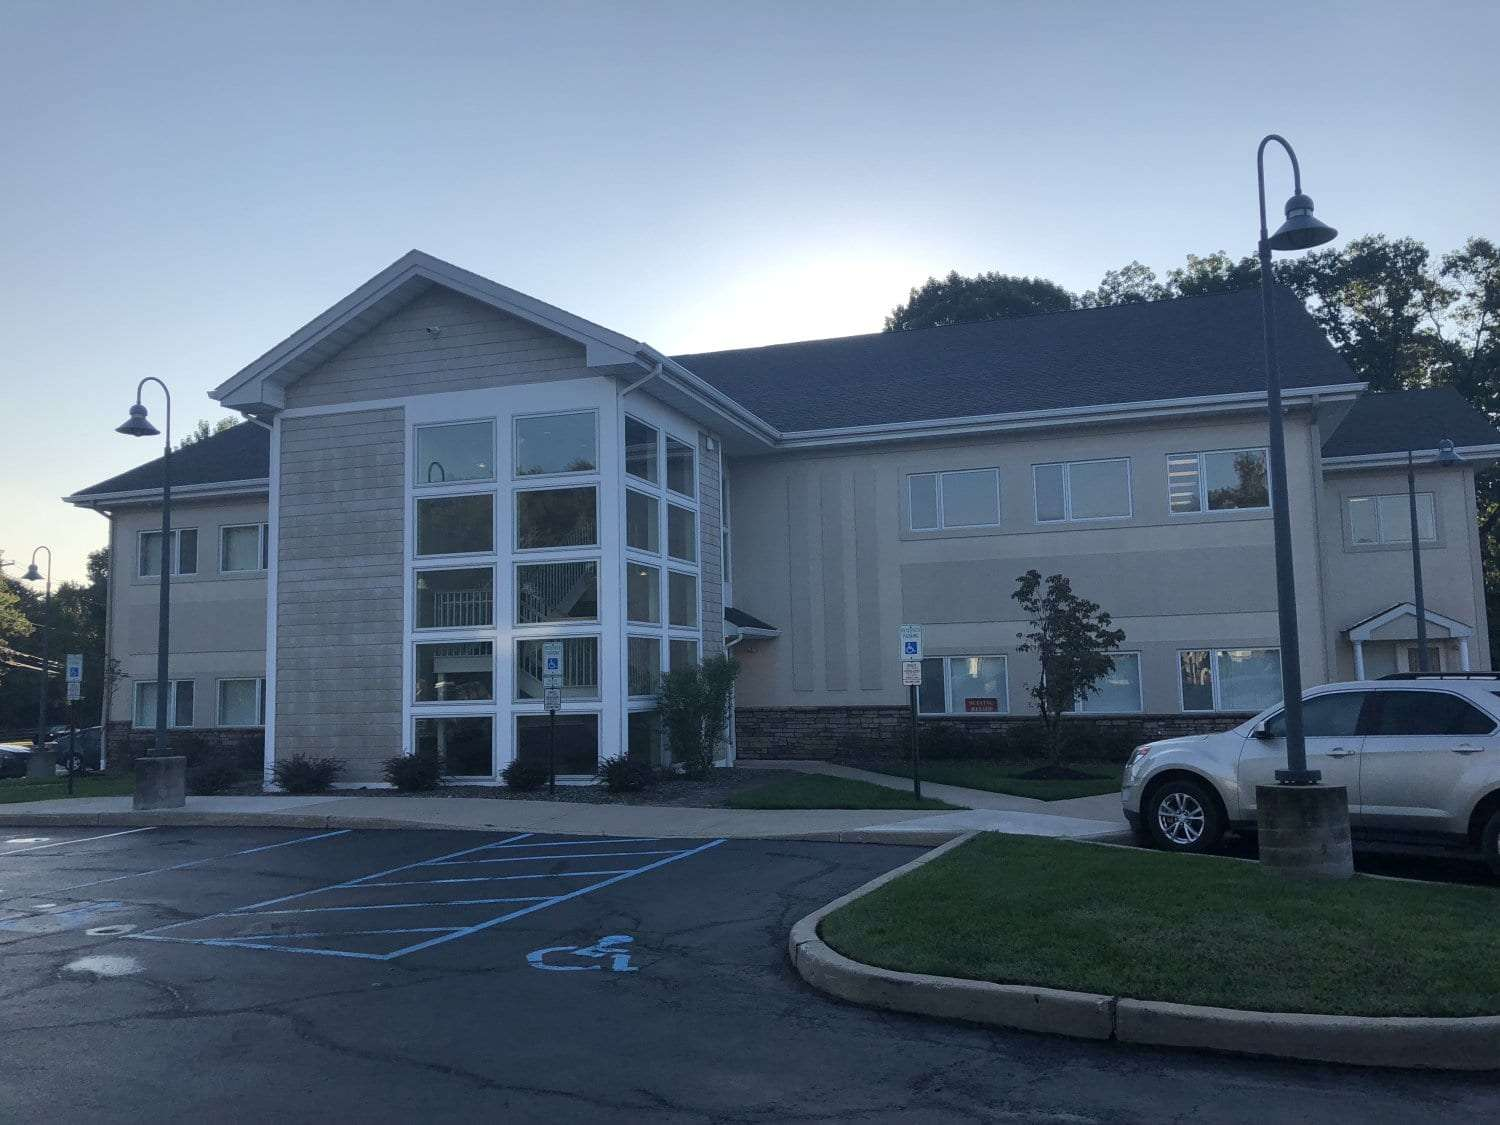 An image of the building where our physical therapy clinic is located in Hazlet, New Jersey.